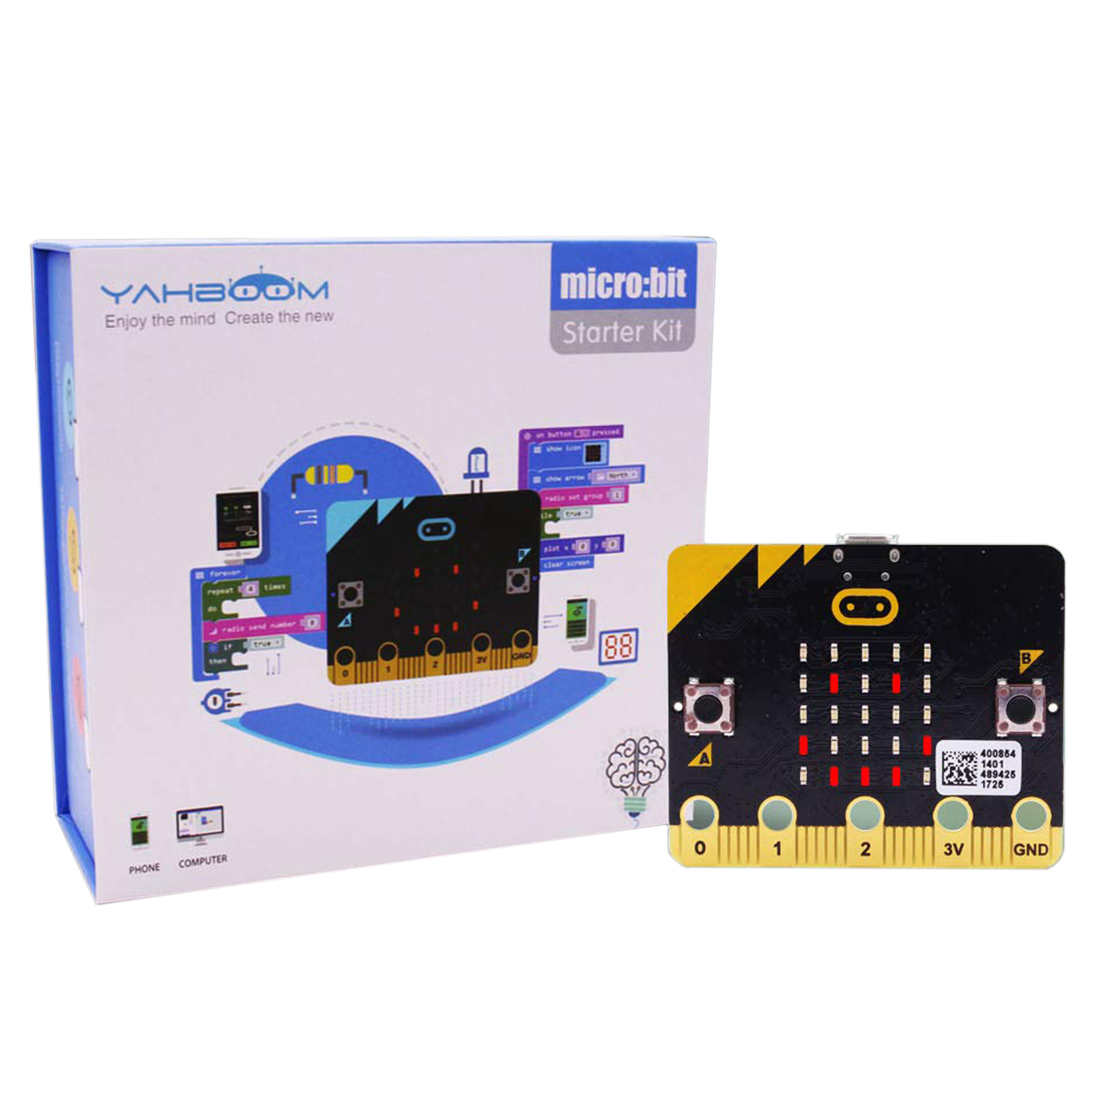 Micro:bit Kit Starter Learning Kit Micro Bit Board Graphical Programmable STEM DIY Toys With Guidance Manual For Kids Gift